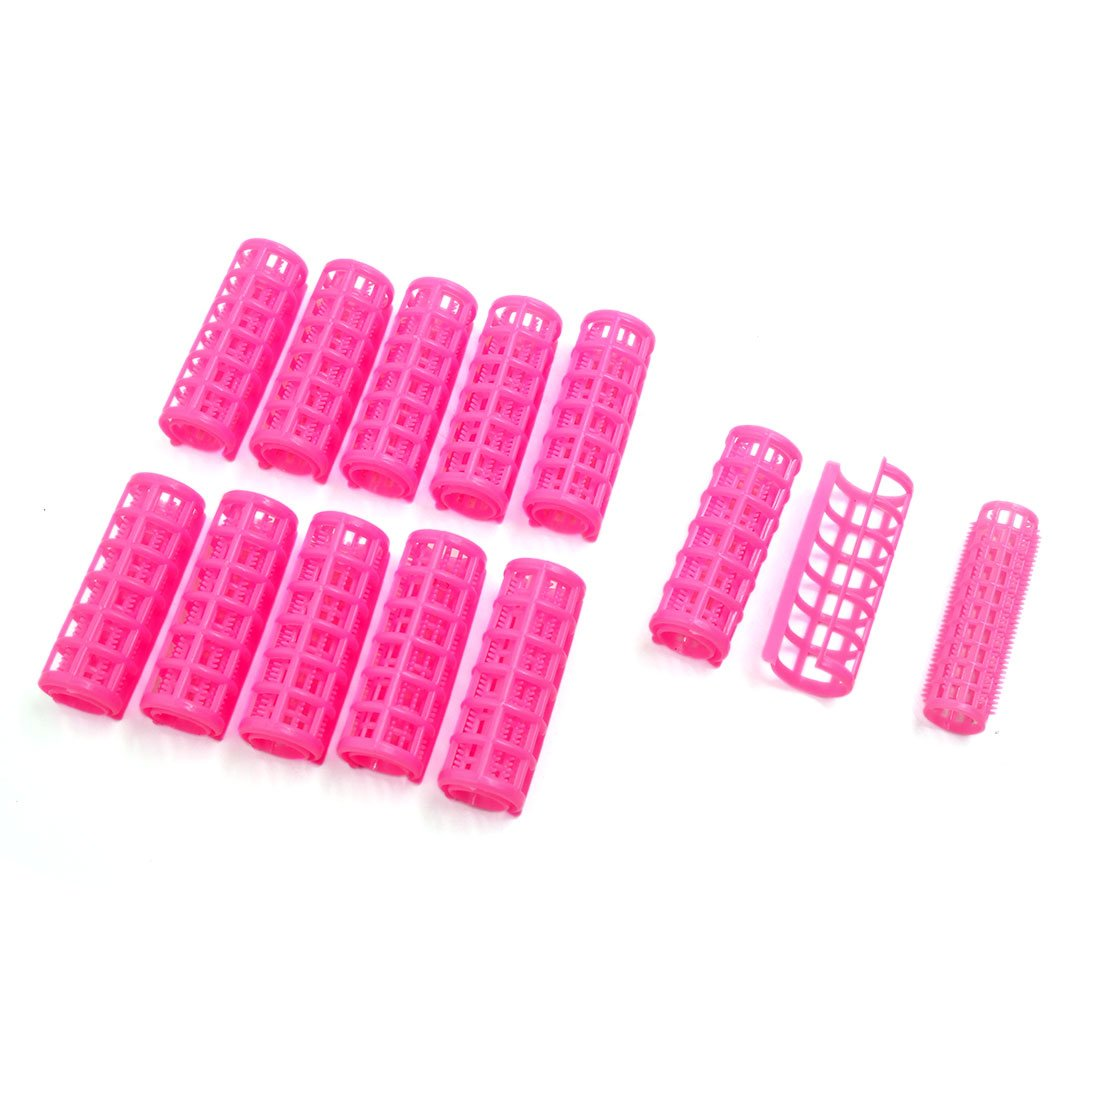 uxcell 12 Pcs Pink Plastic DIY Home Salon Hair Curlers Clips Rollers Hairdressing Tool for Ladies